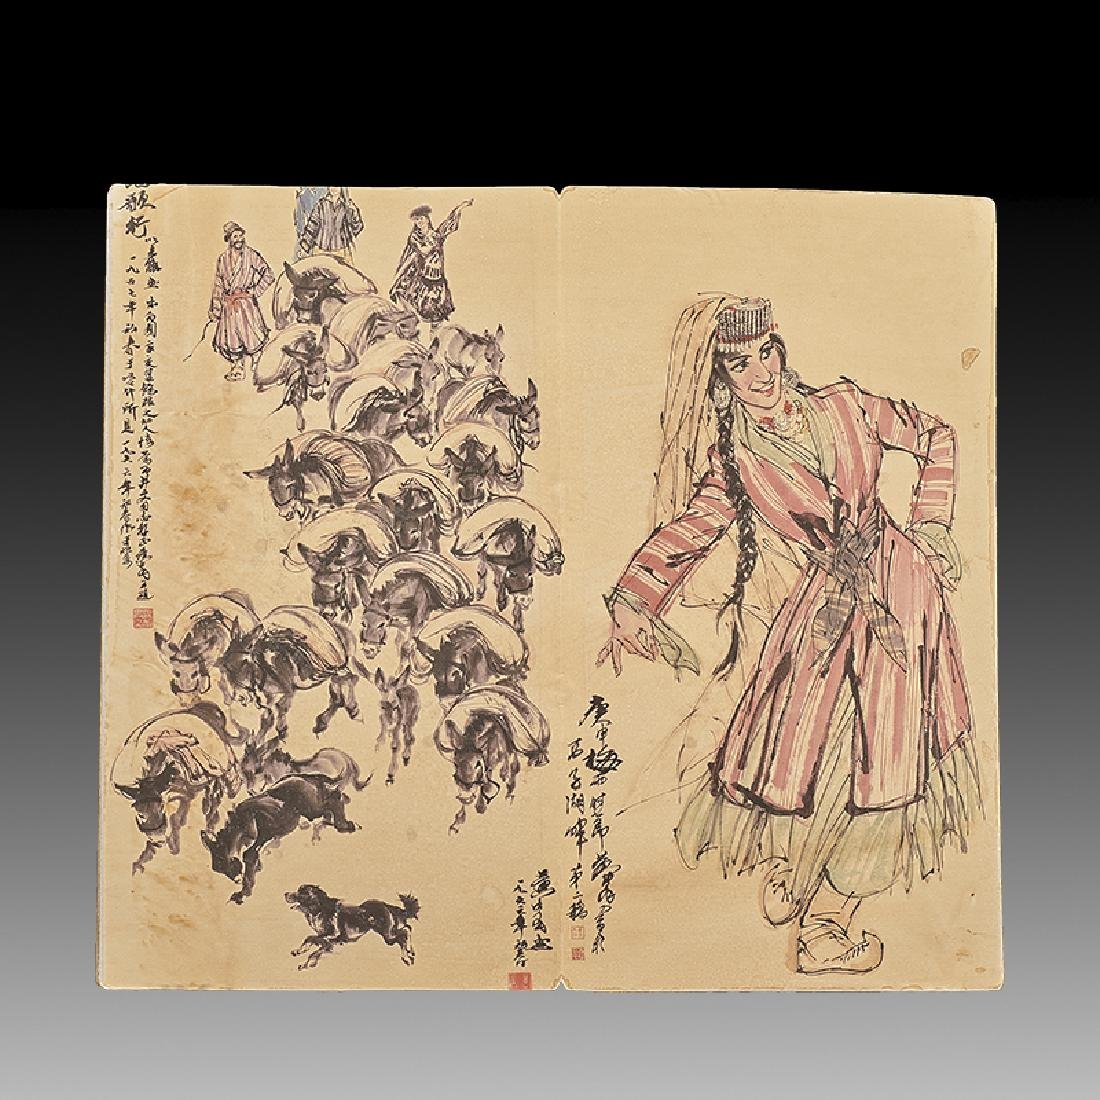 Rare chinese painting album by Hang zhou (1925-1997) - 2